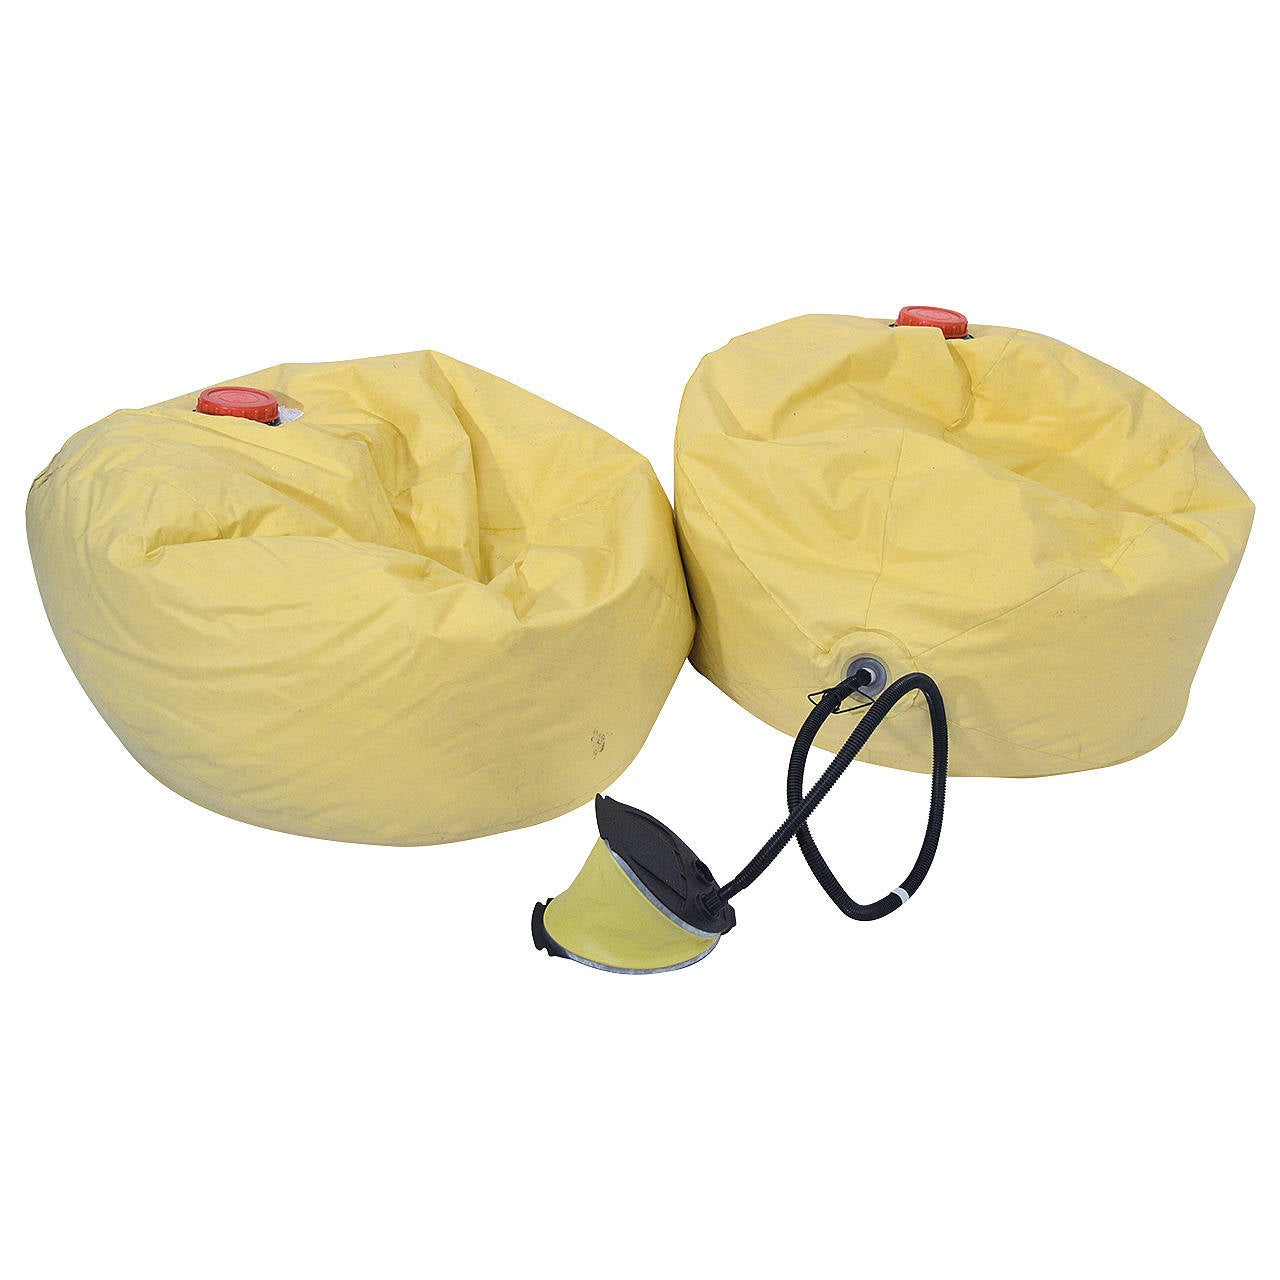 Pictures of bean bag chairs - Pair Of Bean Bag Chairs Memo By Ron Arad 1